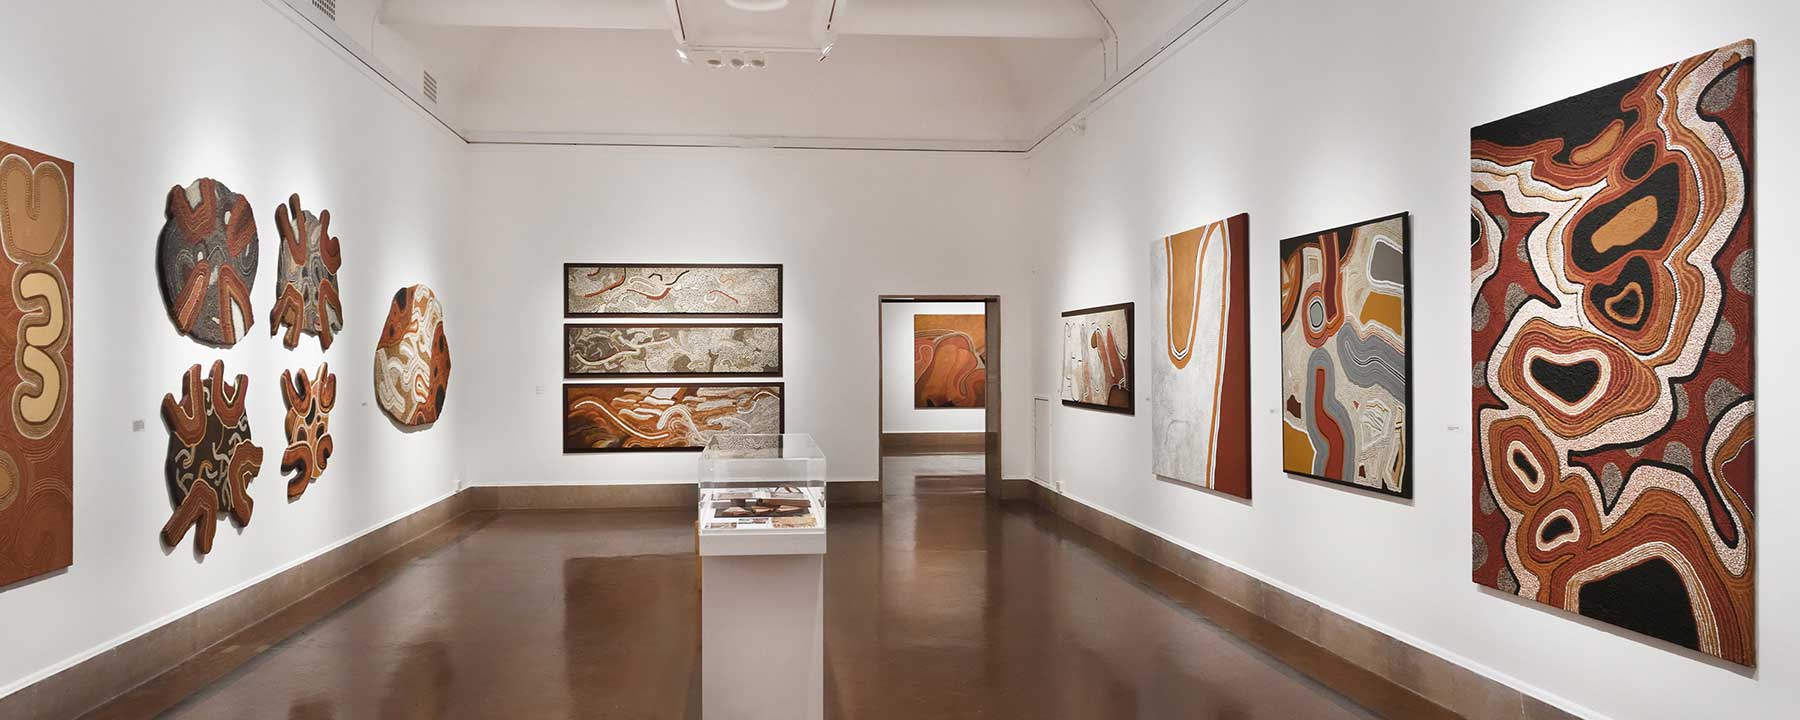 Aspects of Landscape Exhibition, John Hitchens Southampton City Gallery,